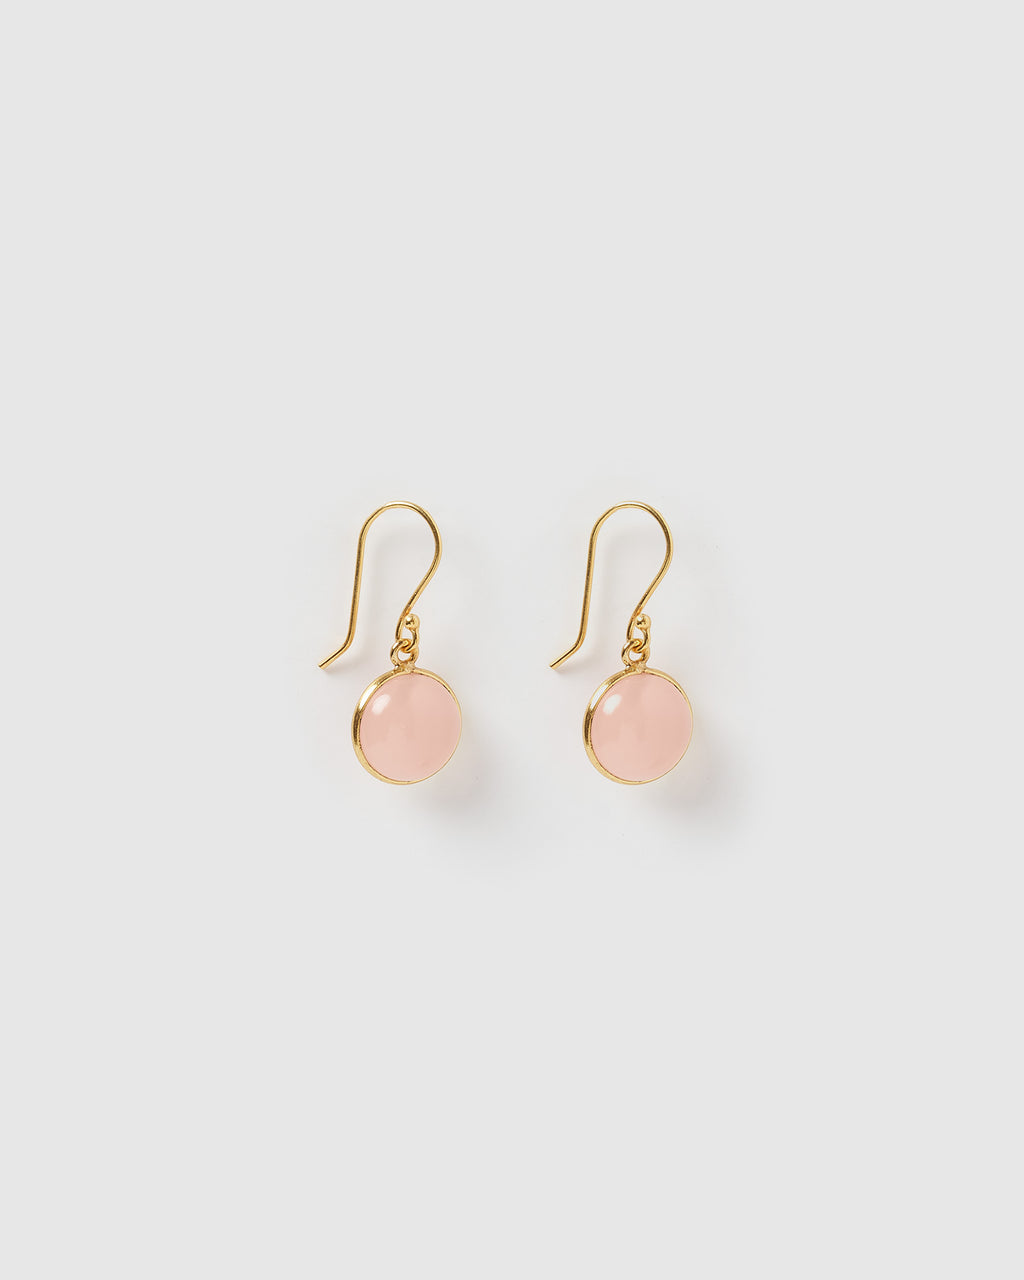 Izoa Truth Earrings Pink Chalcedony Gold